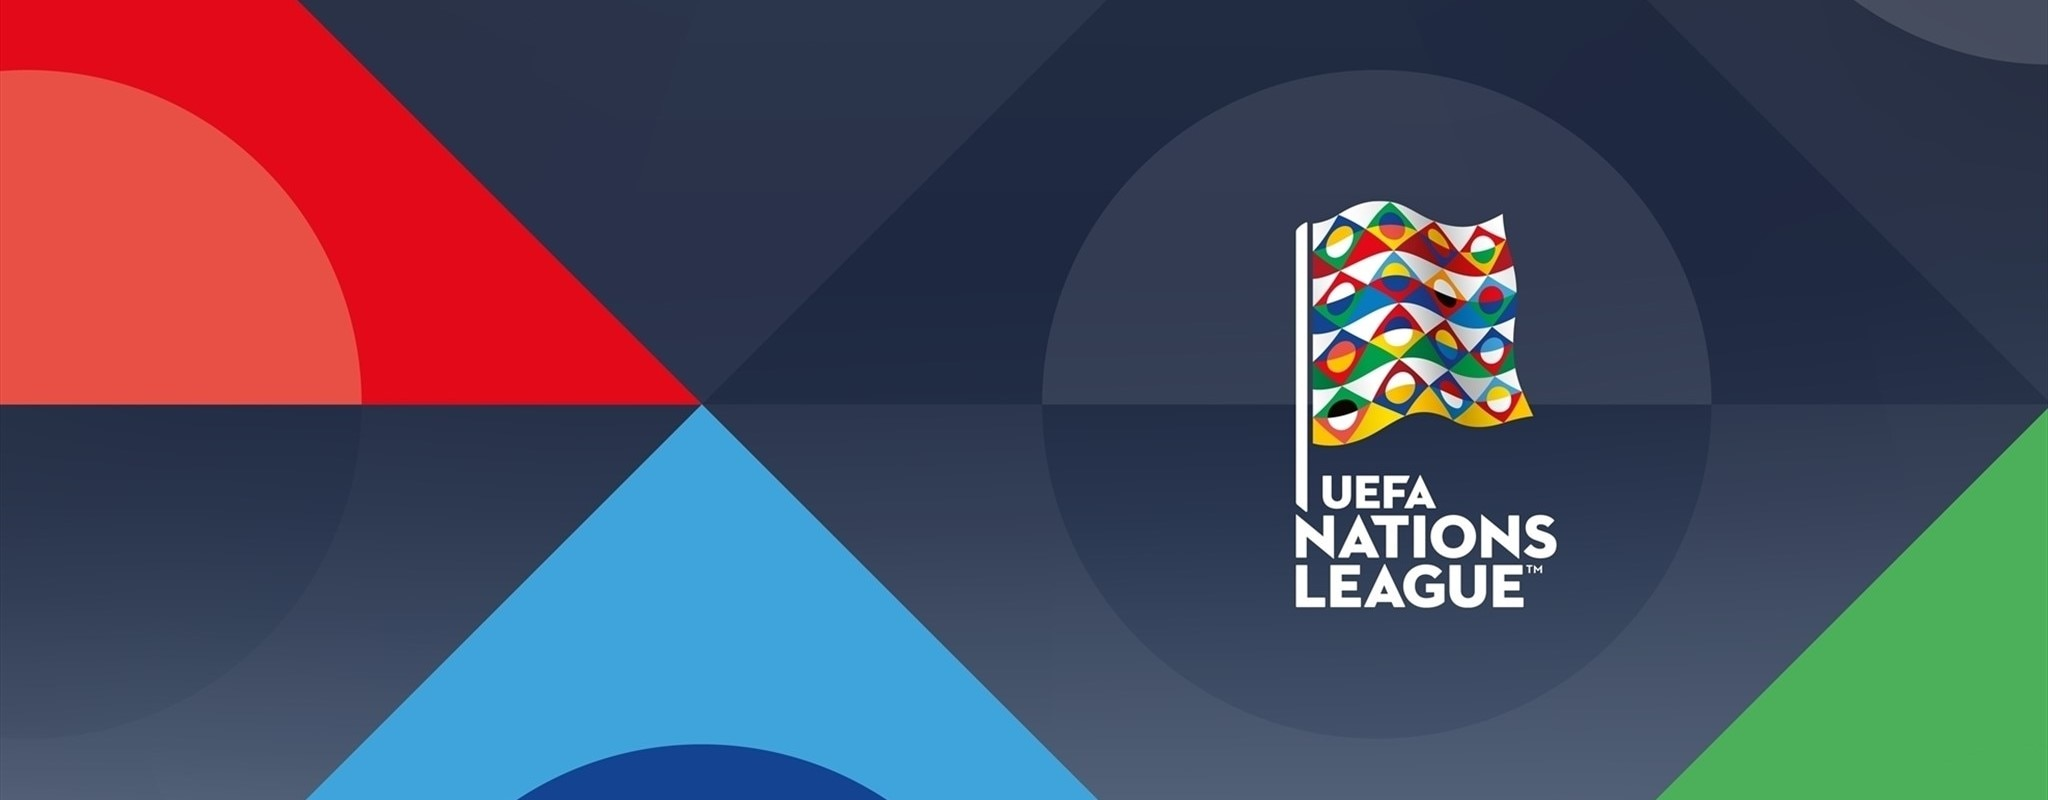 Video: What is the UEFA Nations League and how will it work?